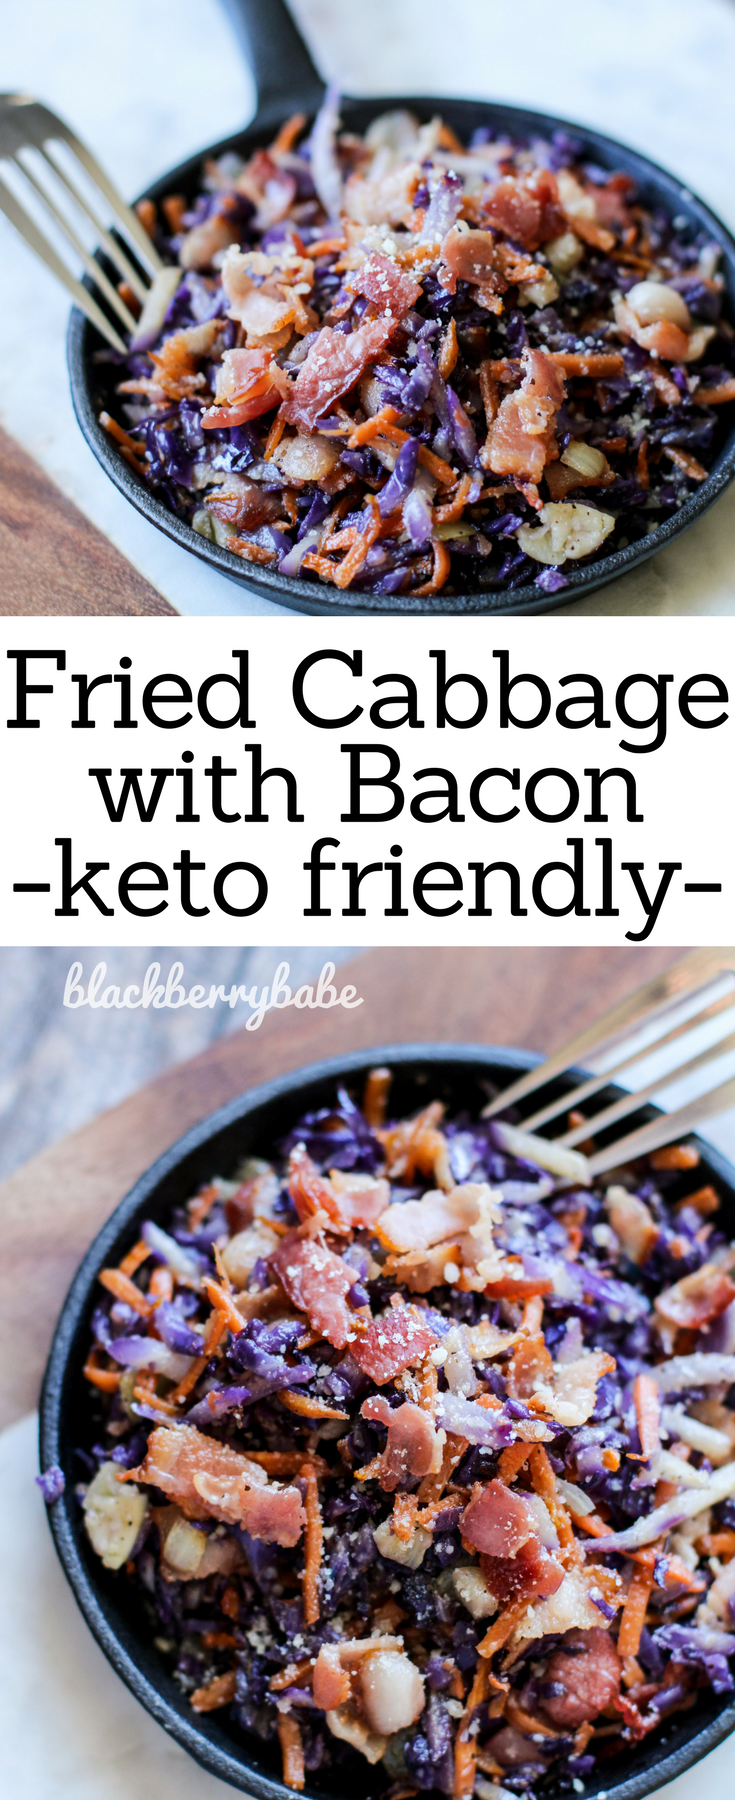 Fried Cabbage with Bacon - Keto, Low Carb Fried Cabbage Recipe